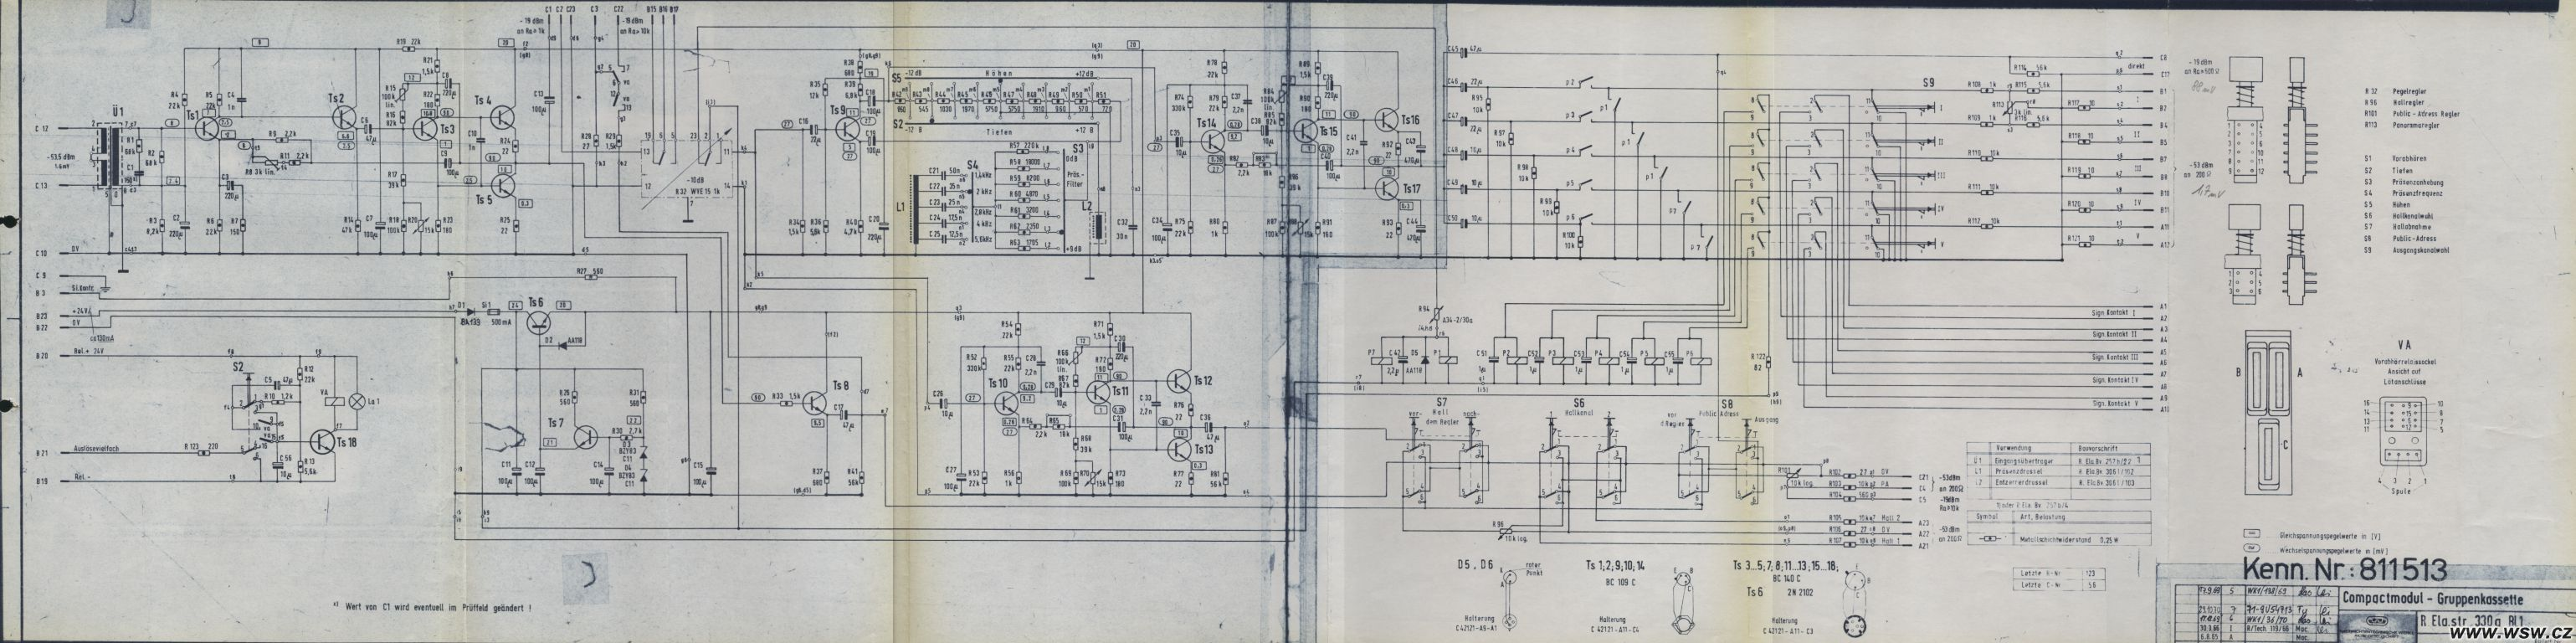 schematic for behringer rx1602 mixer quote